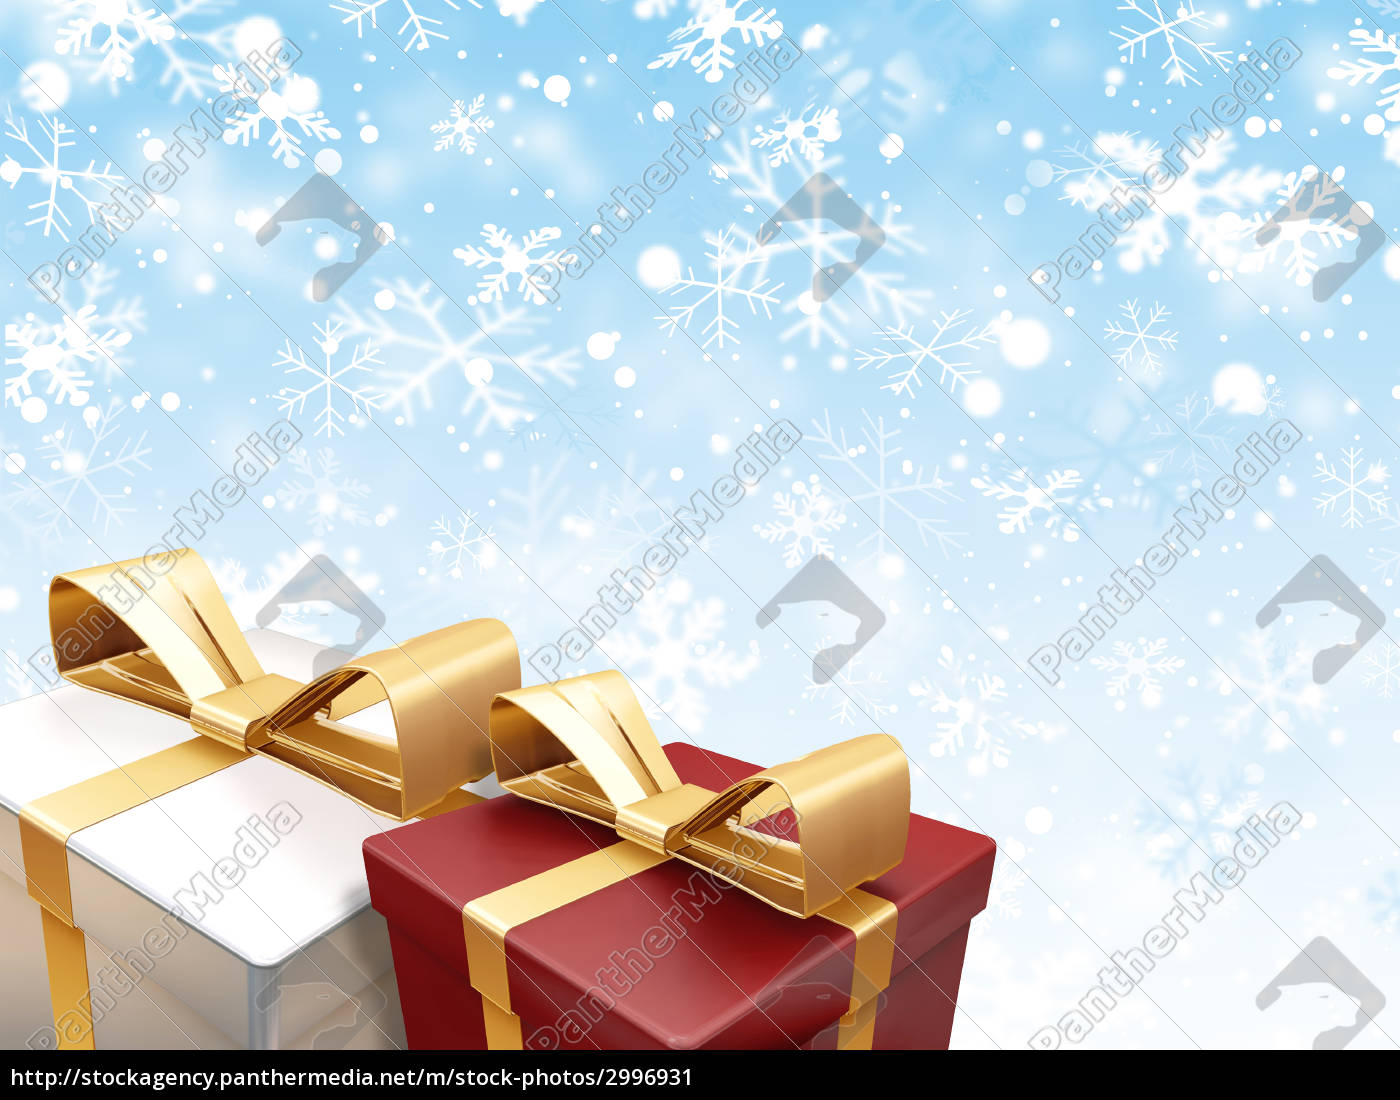 present, winter, celebrate, reveling, revels, celebrates - 2996931